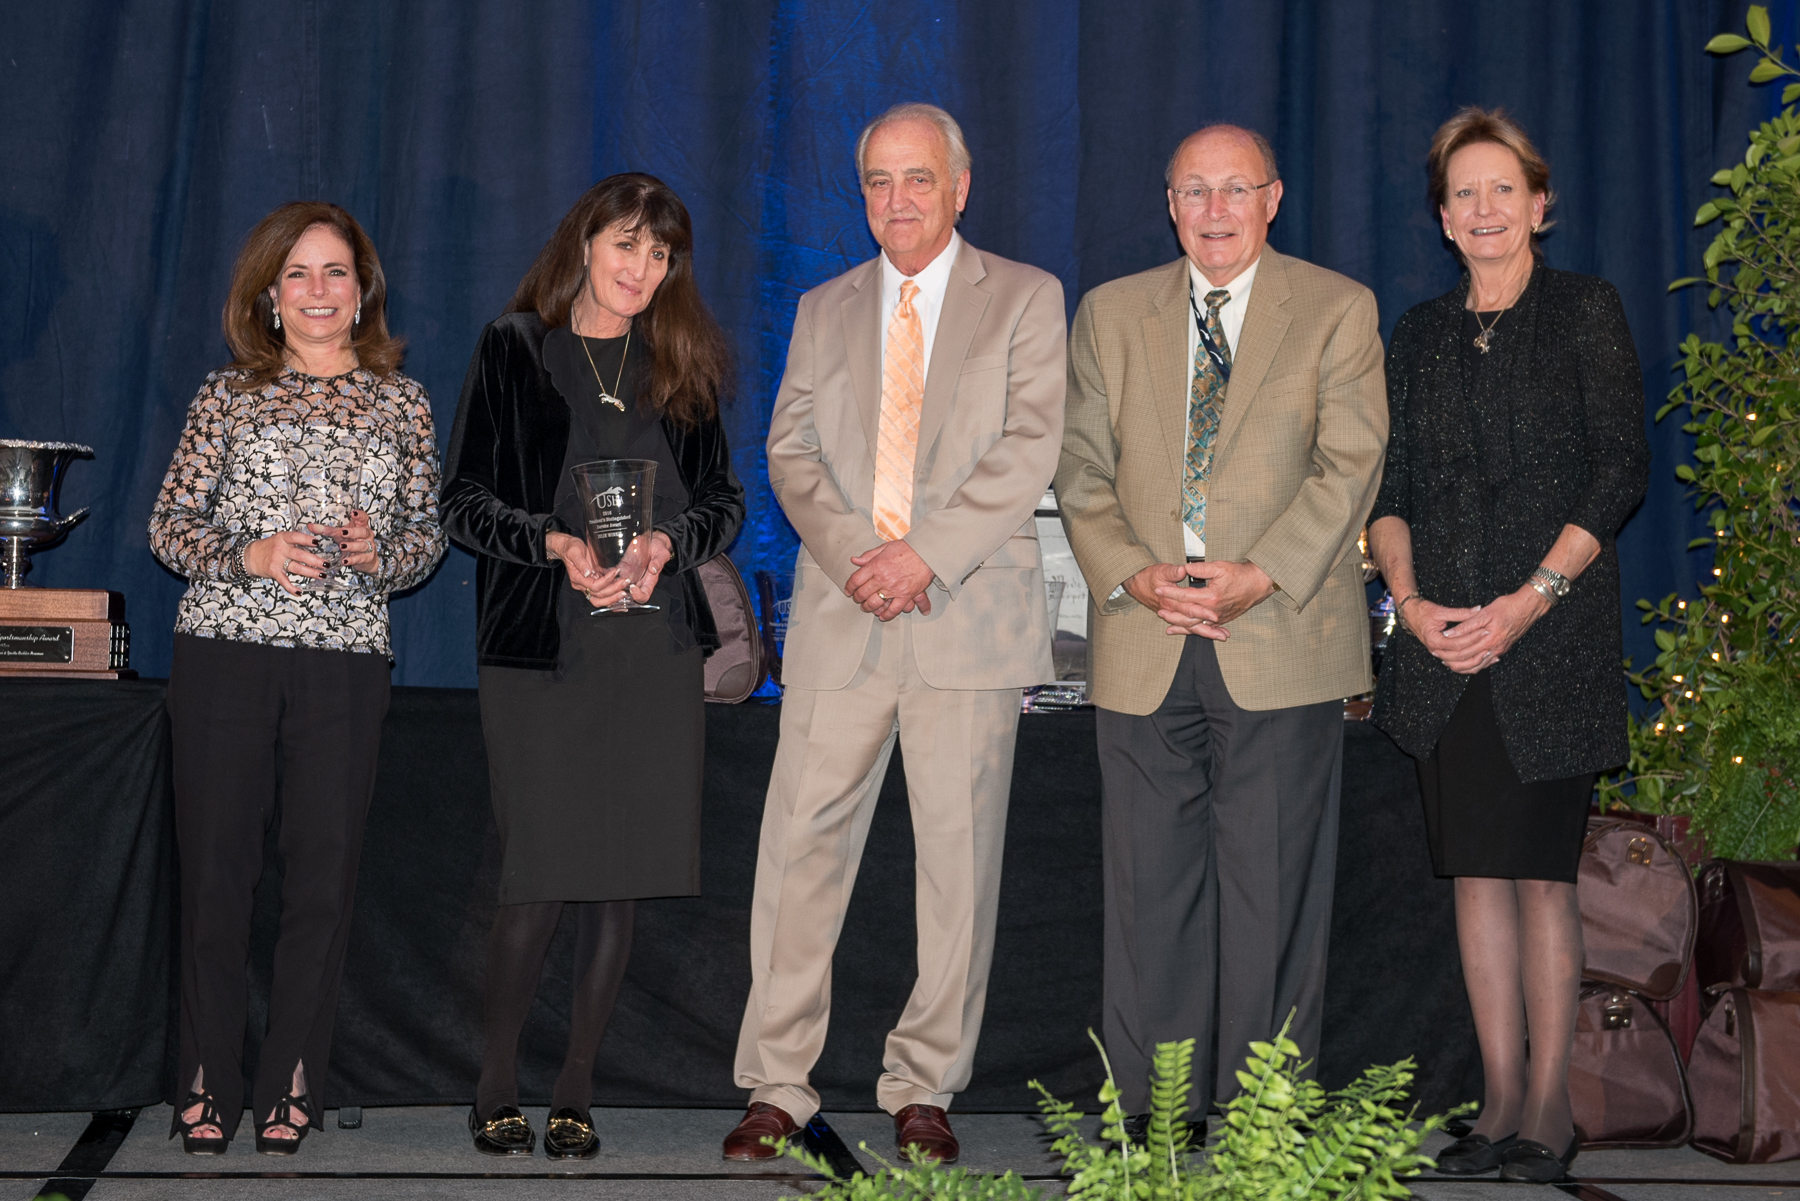 Julie Winkel, second from left, received a USHJA President's Distinguished Service Award during the USHJA Annual Meeting. She's pictured with fellow award winners, from left, Cheryl Rubenstein, Joe Dotoli, Howard Pike and Kathy Meyer.